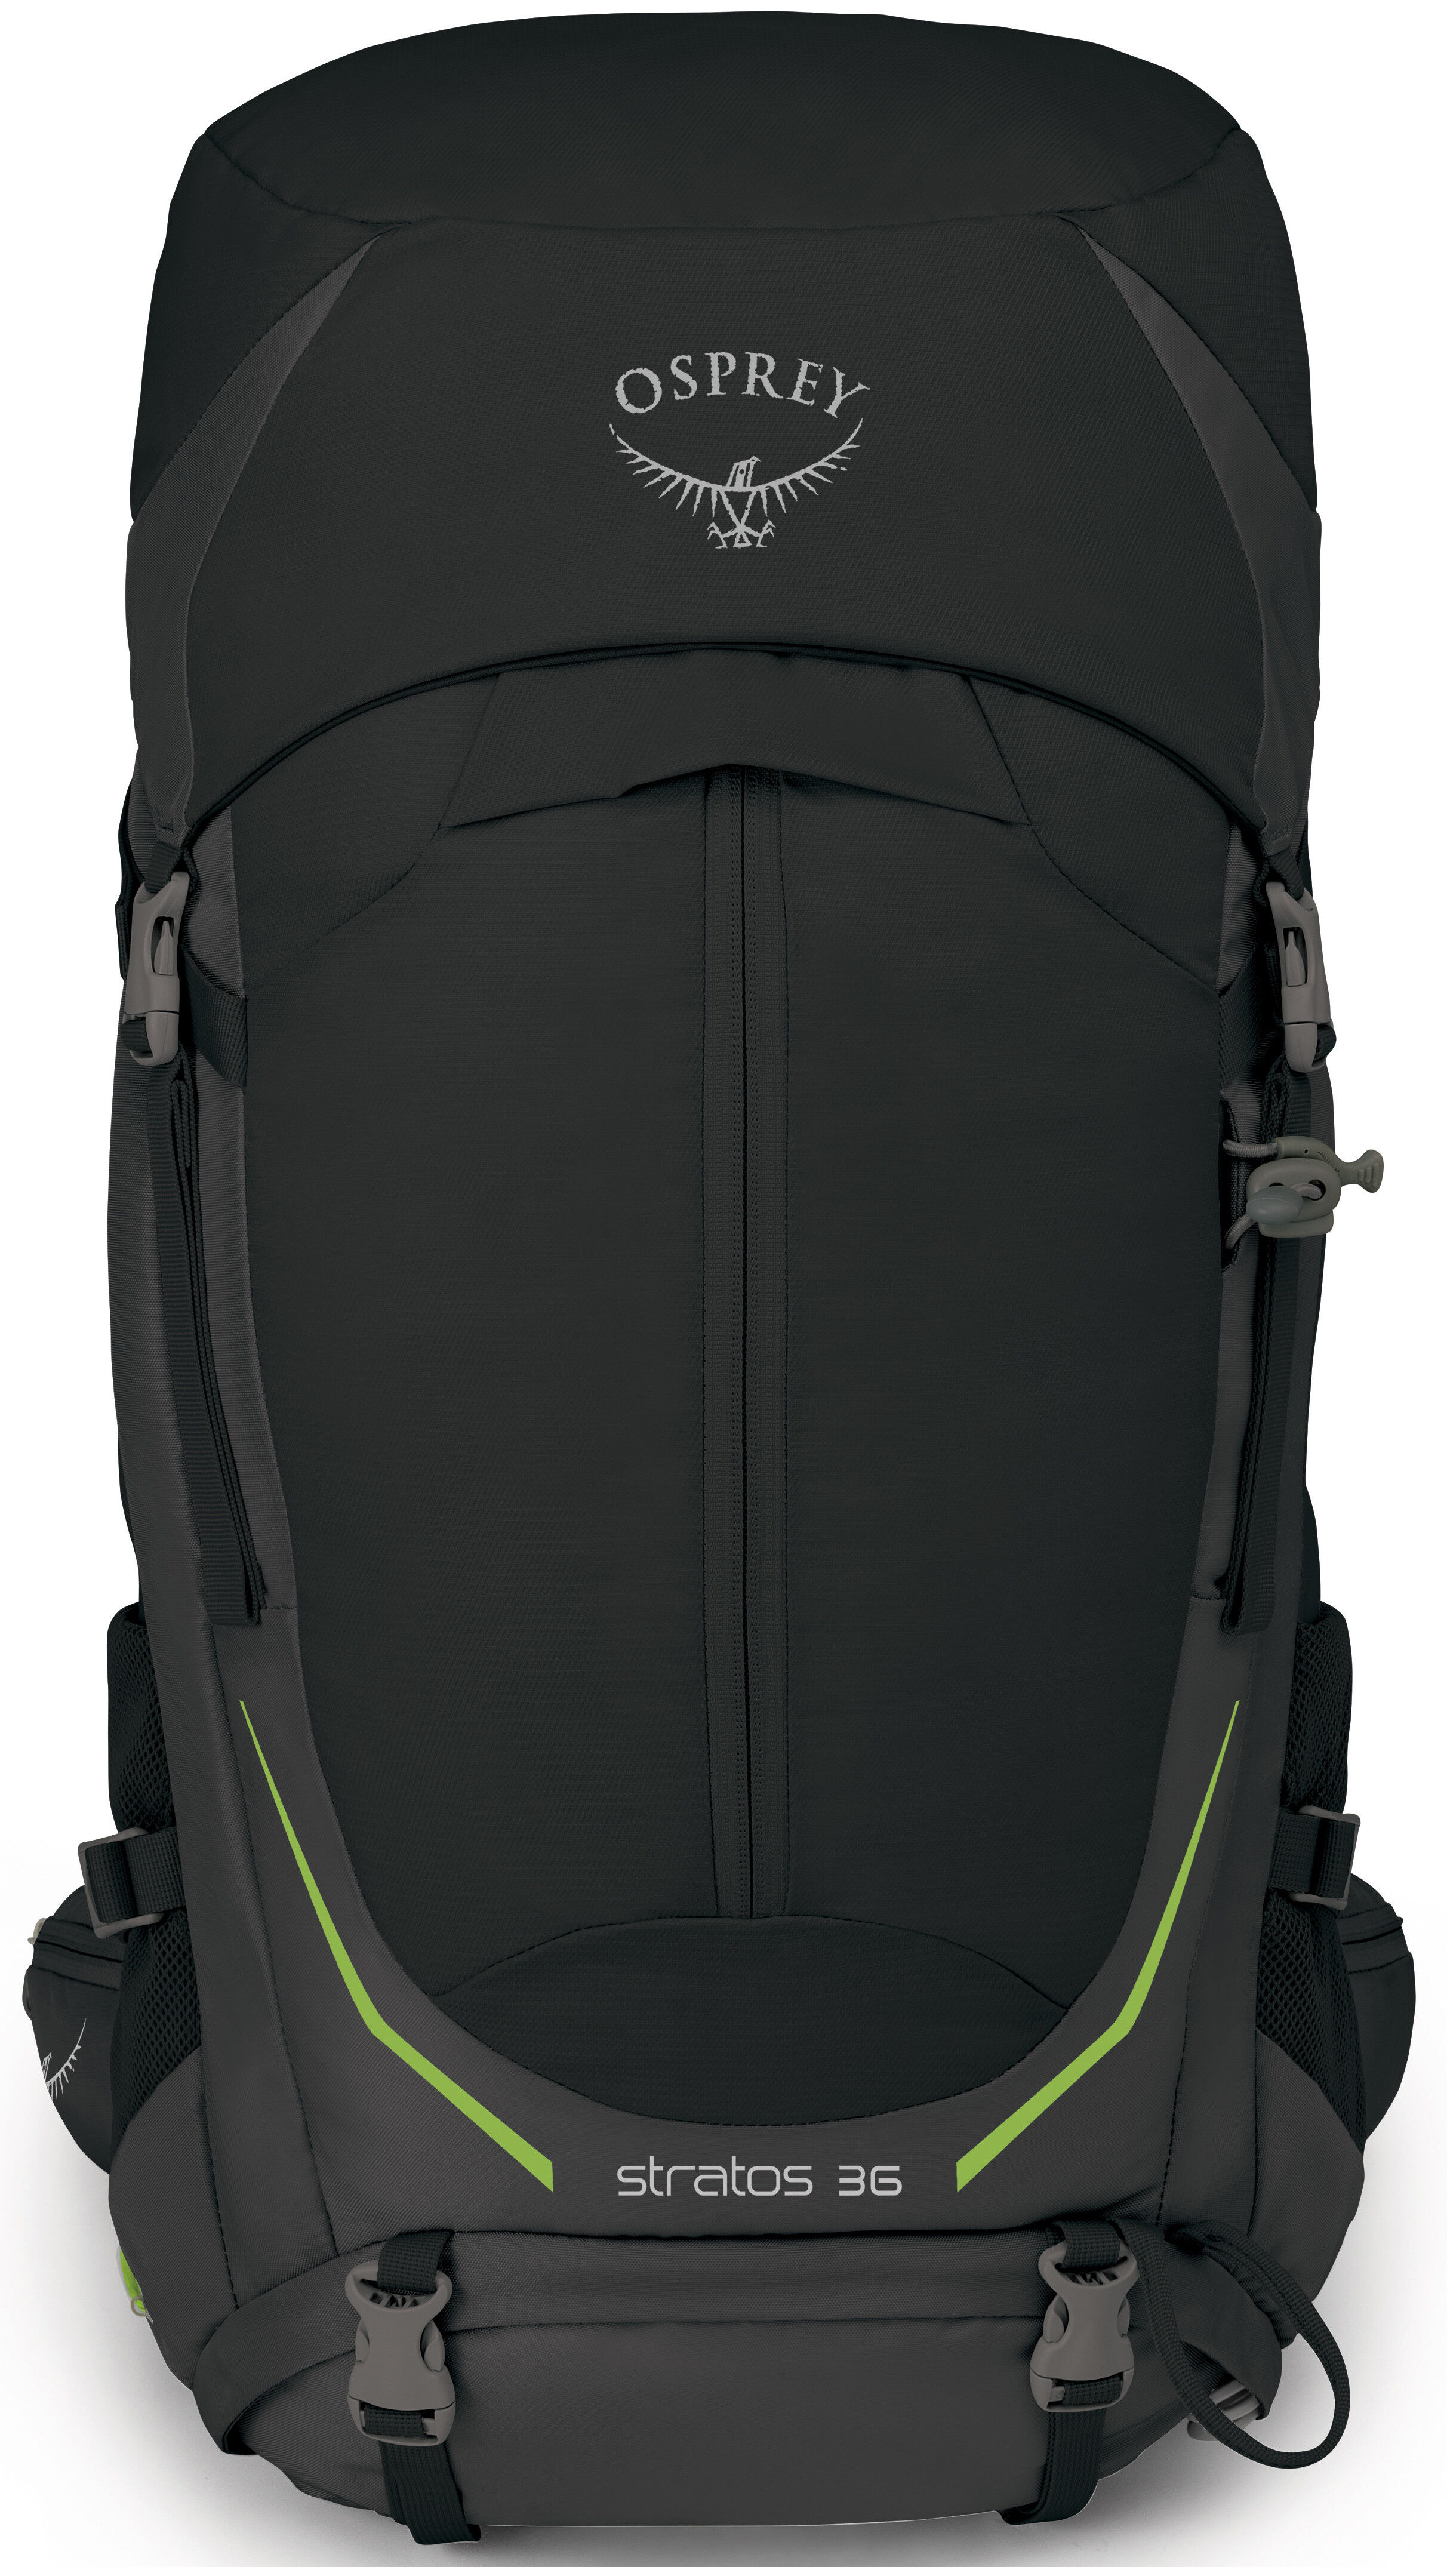 osprey stratos 36 size guide